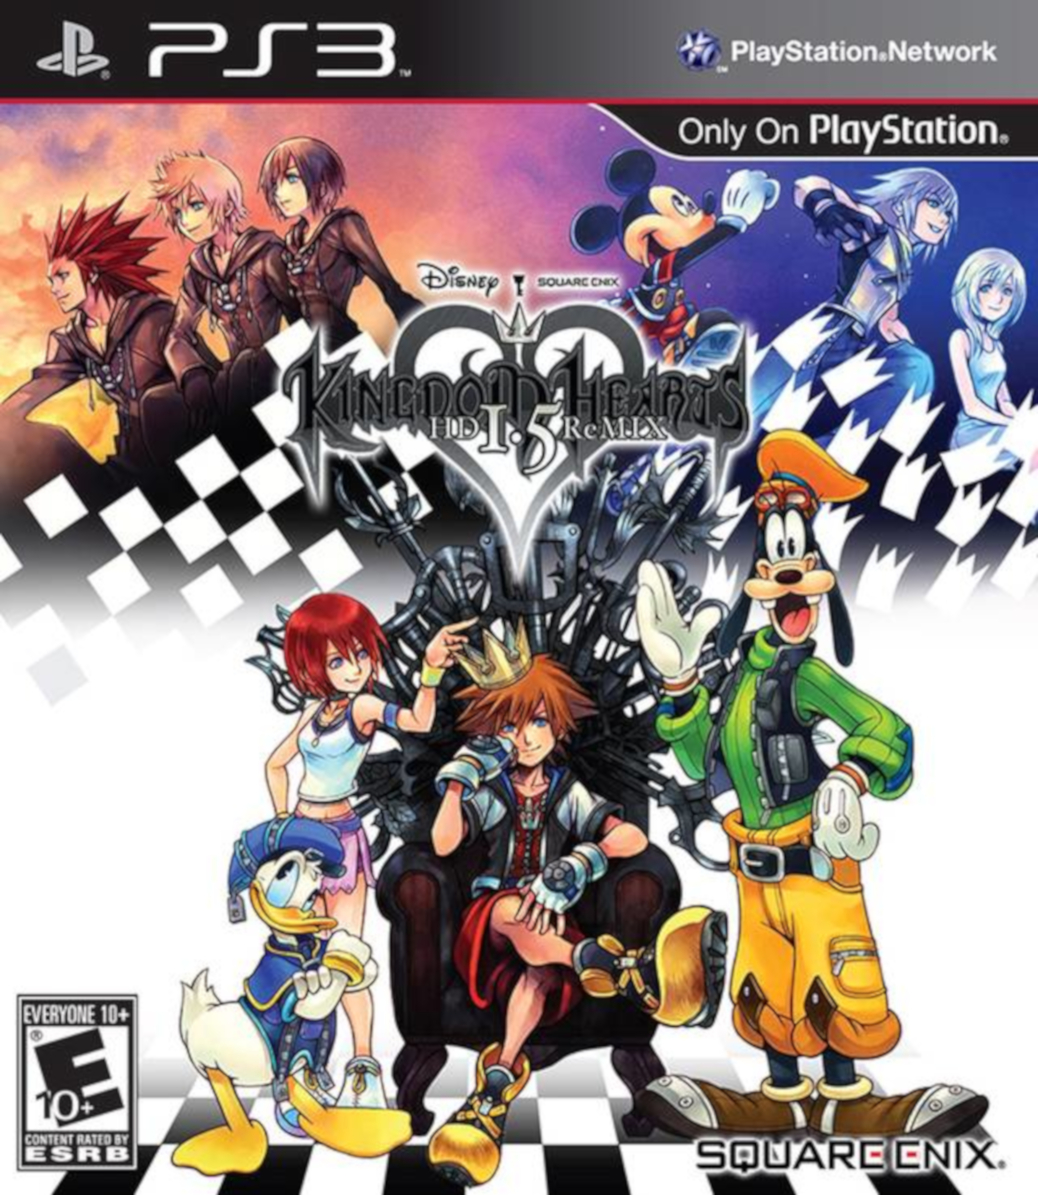 Kingdom Hearts HD 1.5 ReMIX - PlayStation 3 - North American Box Art